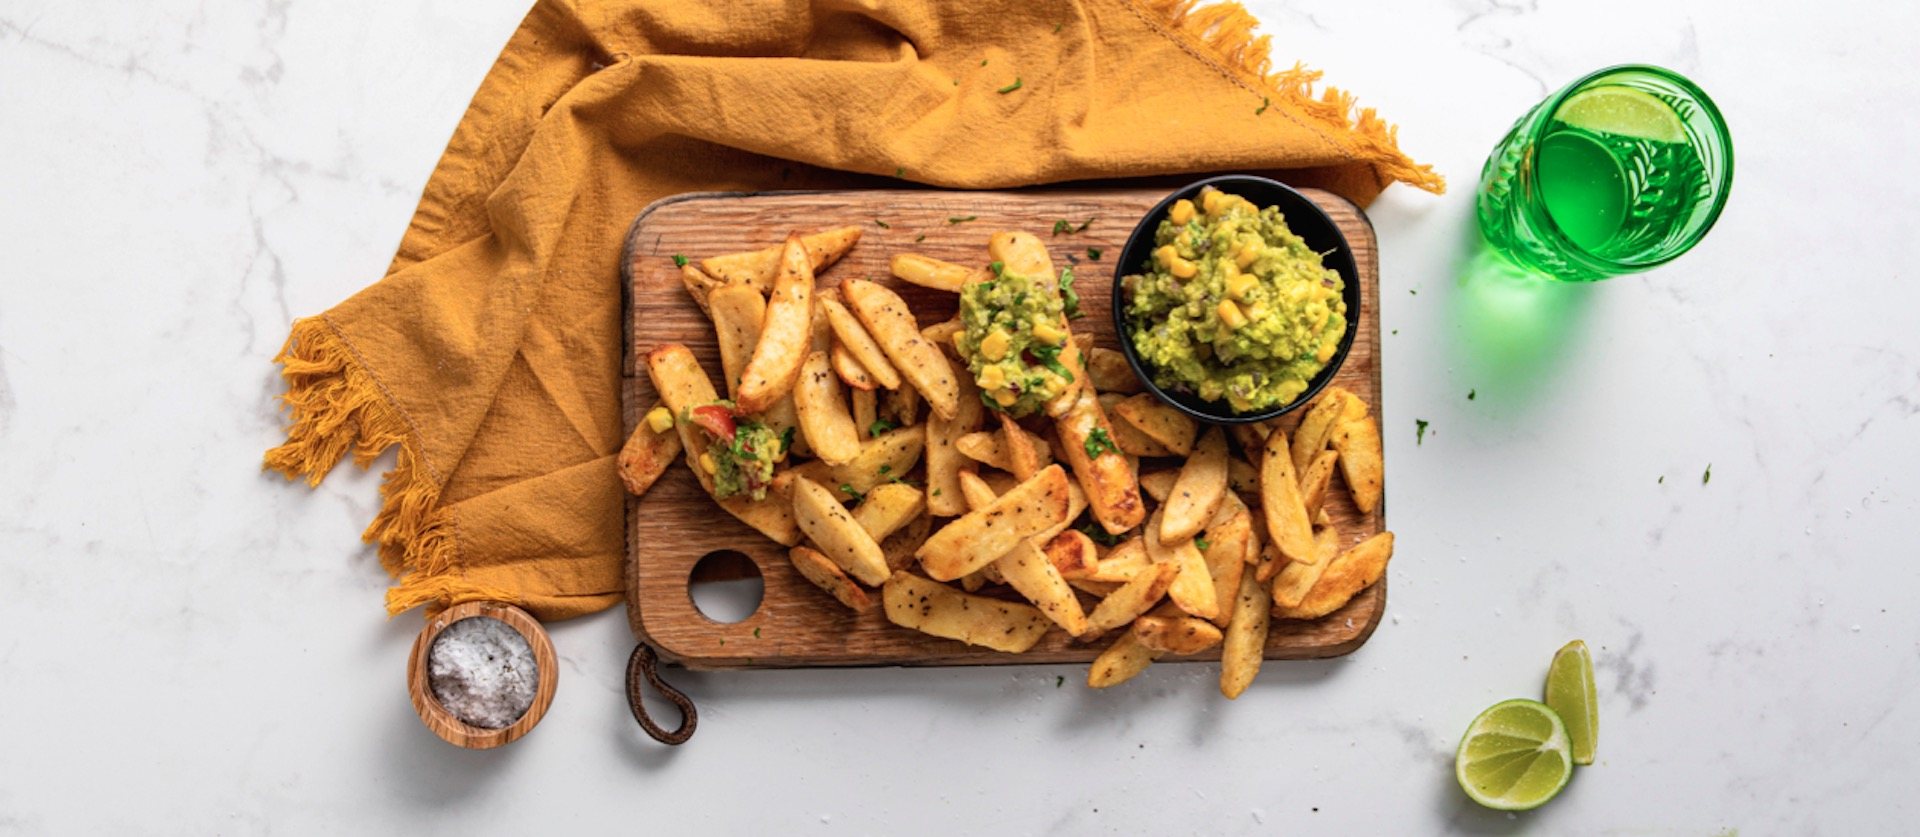 Oven Chips With Guacamole Dip